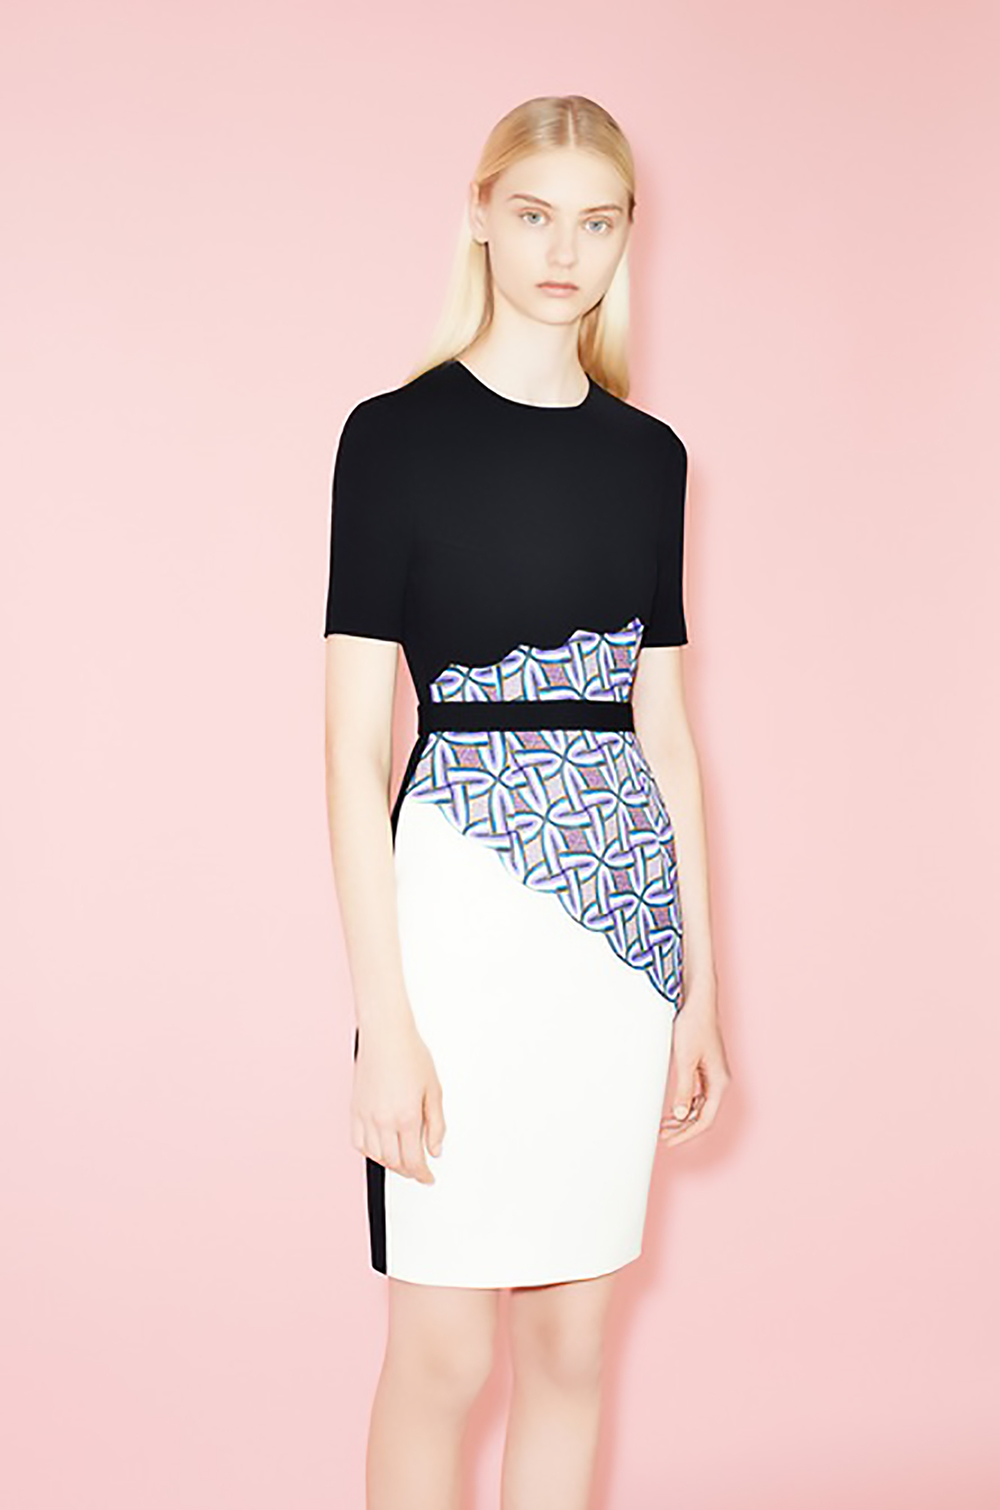 style.com peter pilotto resort 2014 look 26 peter pilotto 1500.jpg